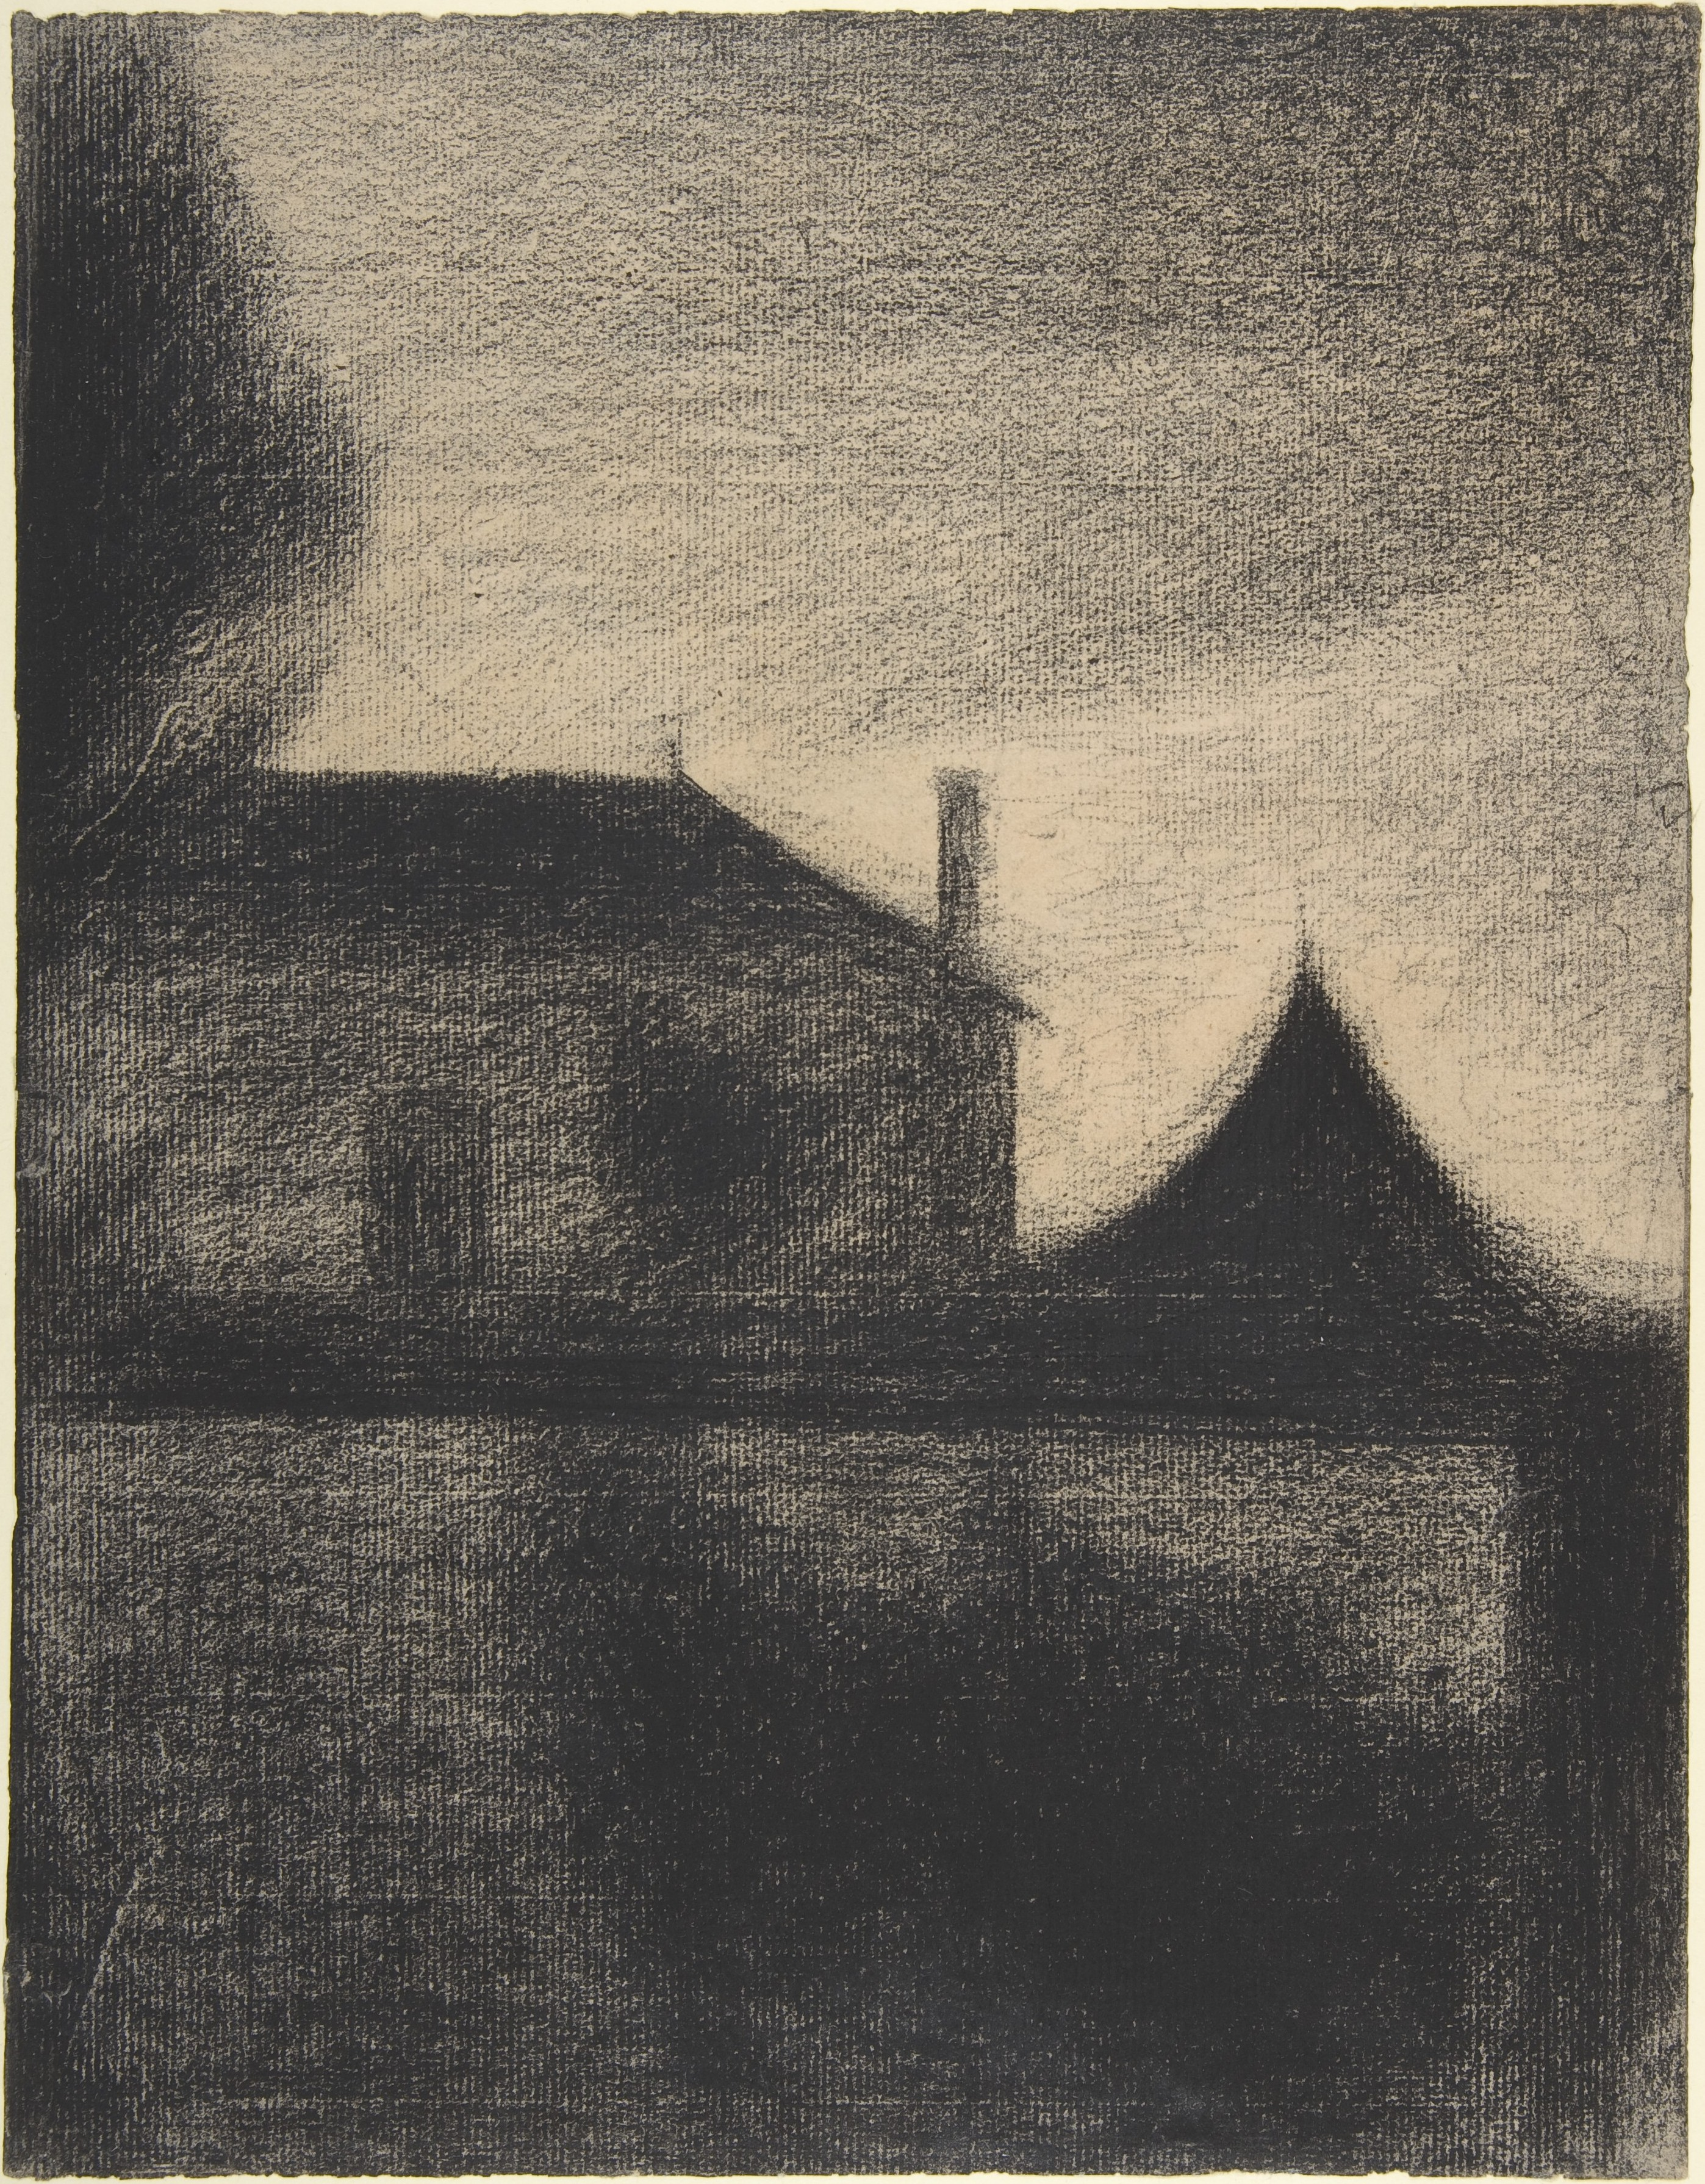 Georges Seurat, 1859–1891  Metpublications  The Metropolitan Museum Of Art